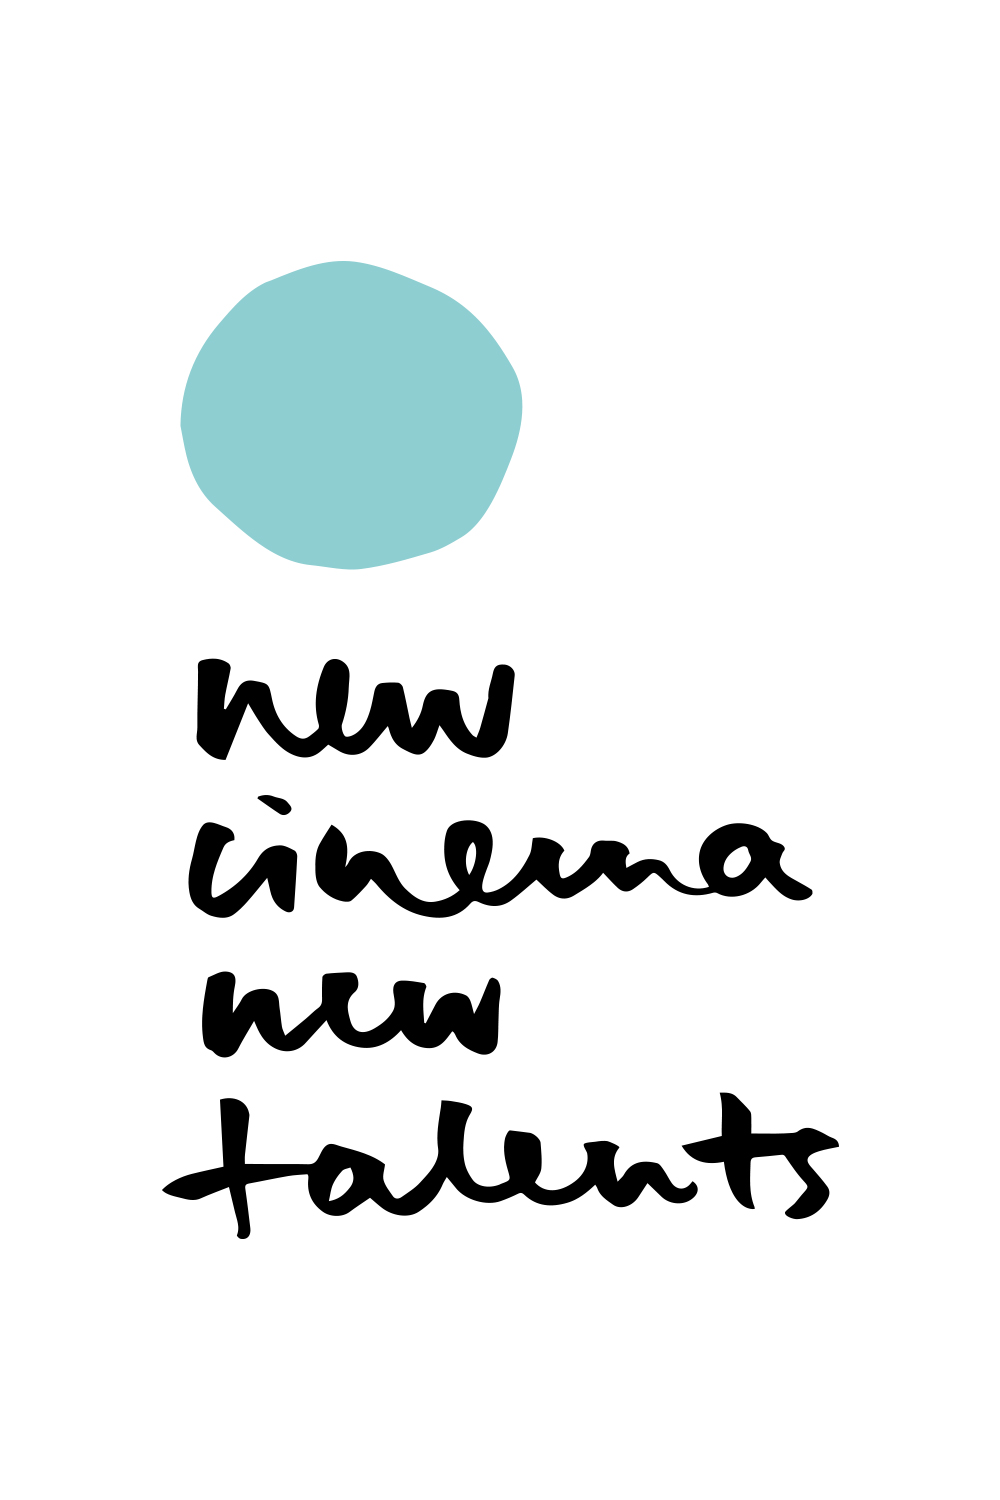 new cinema new talents logo 2019